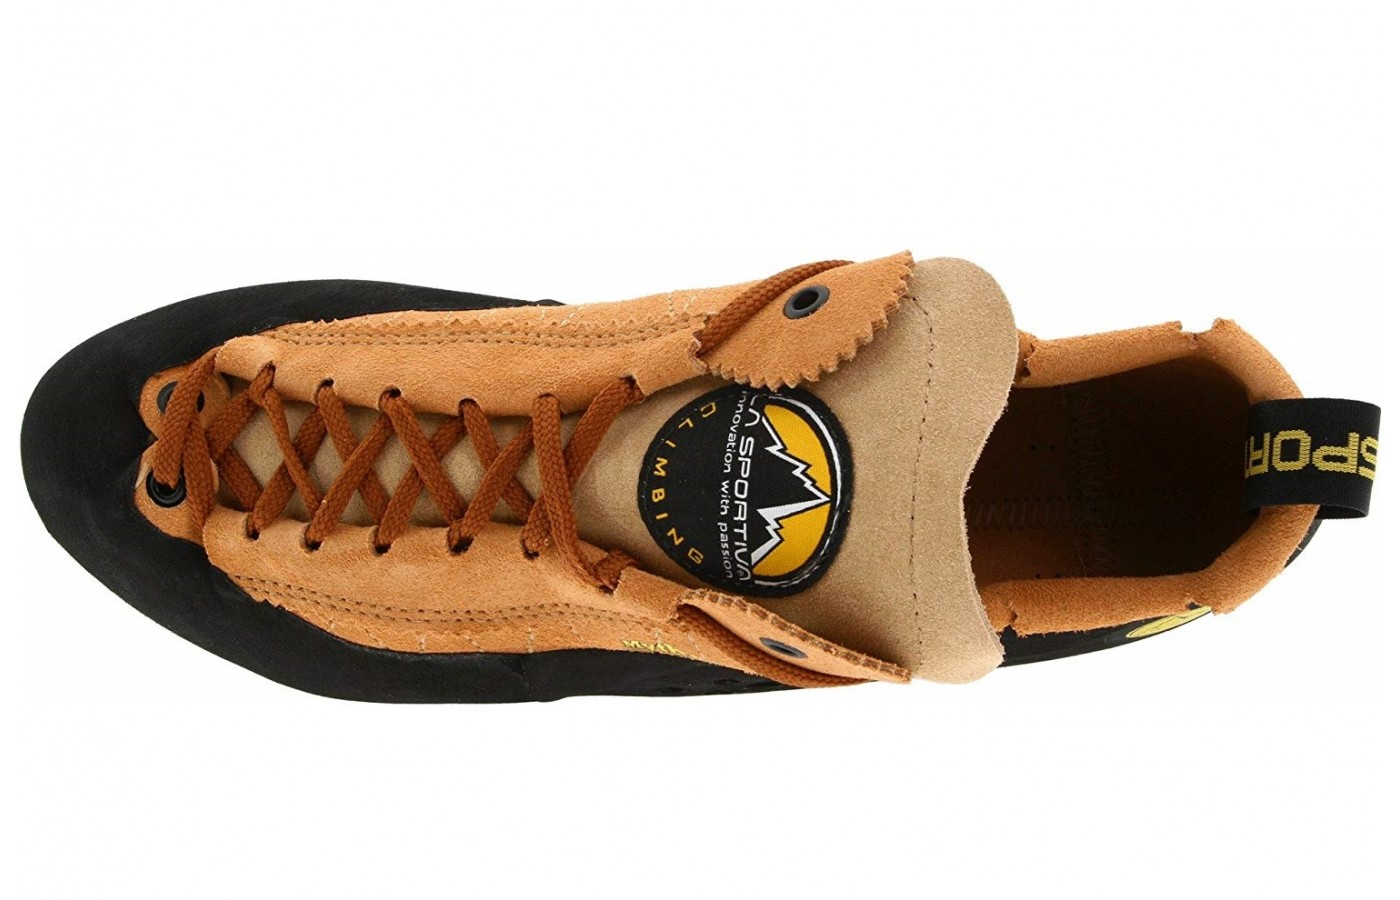 The La Sportiva Mythos has an unlined upper to better stretch across the climbers foot.